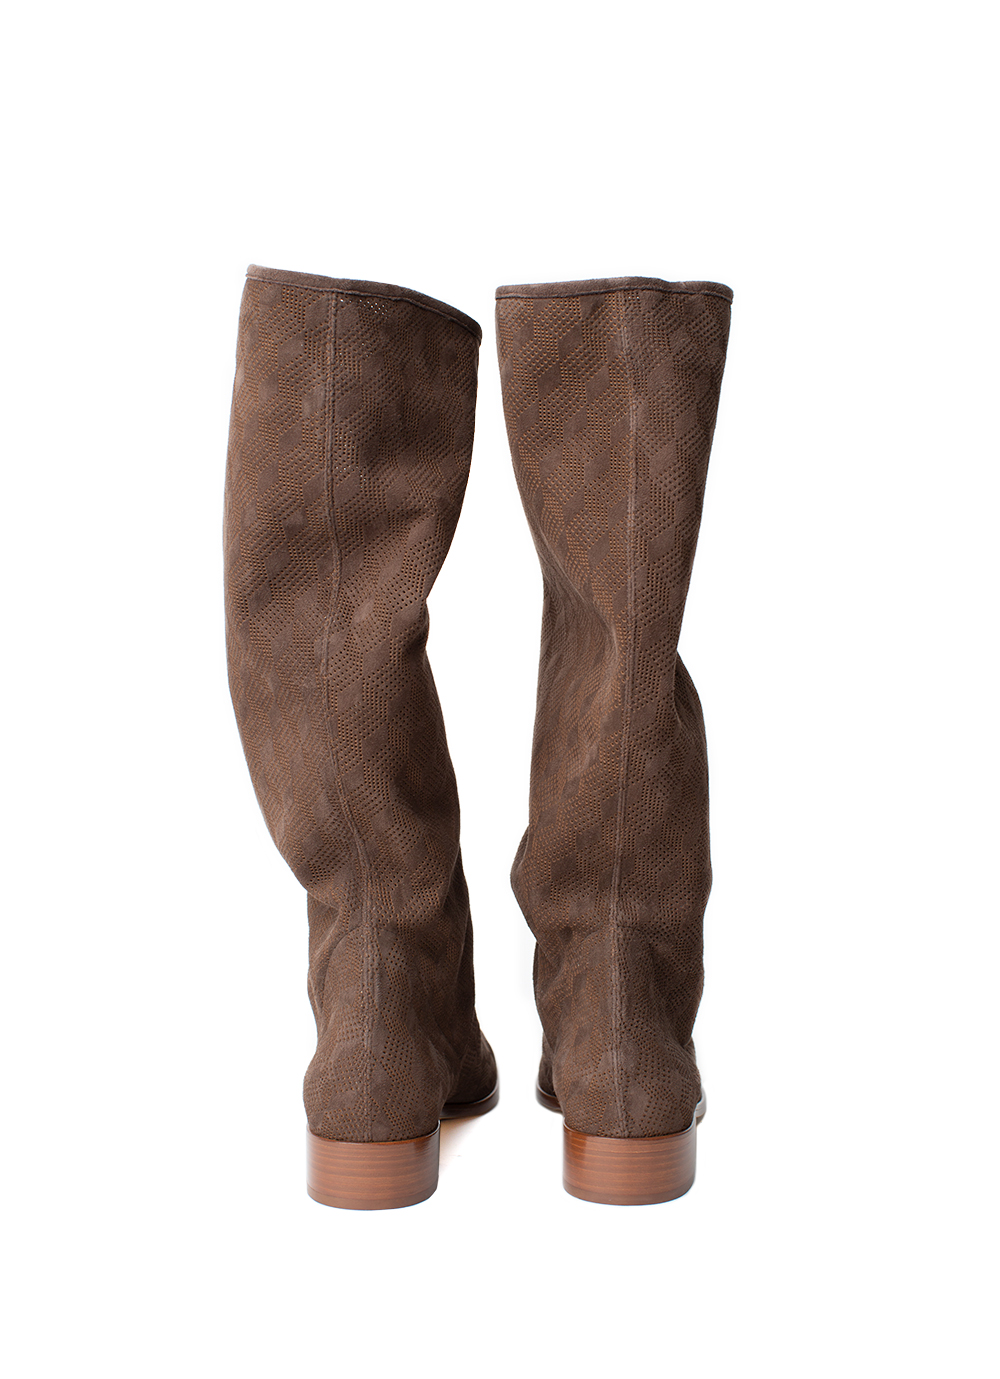 Lasercut Boots, brown